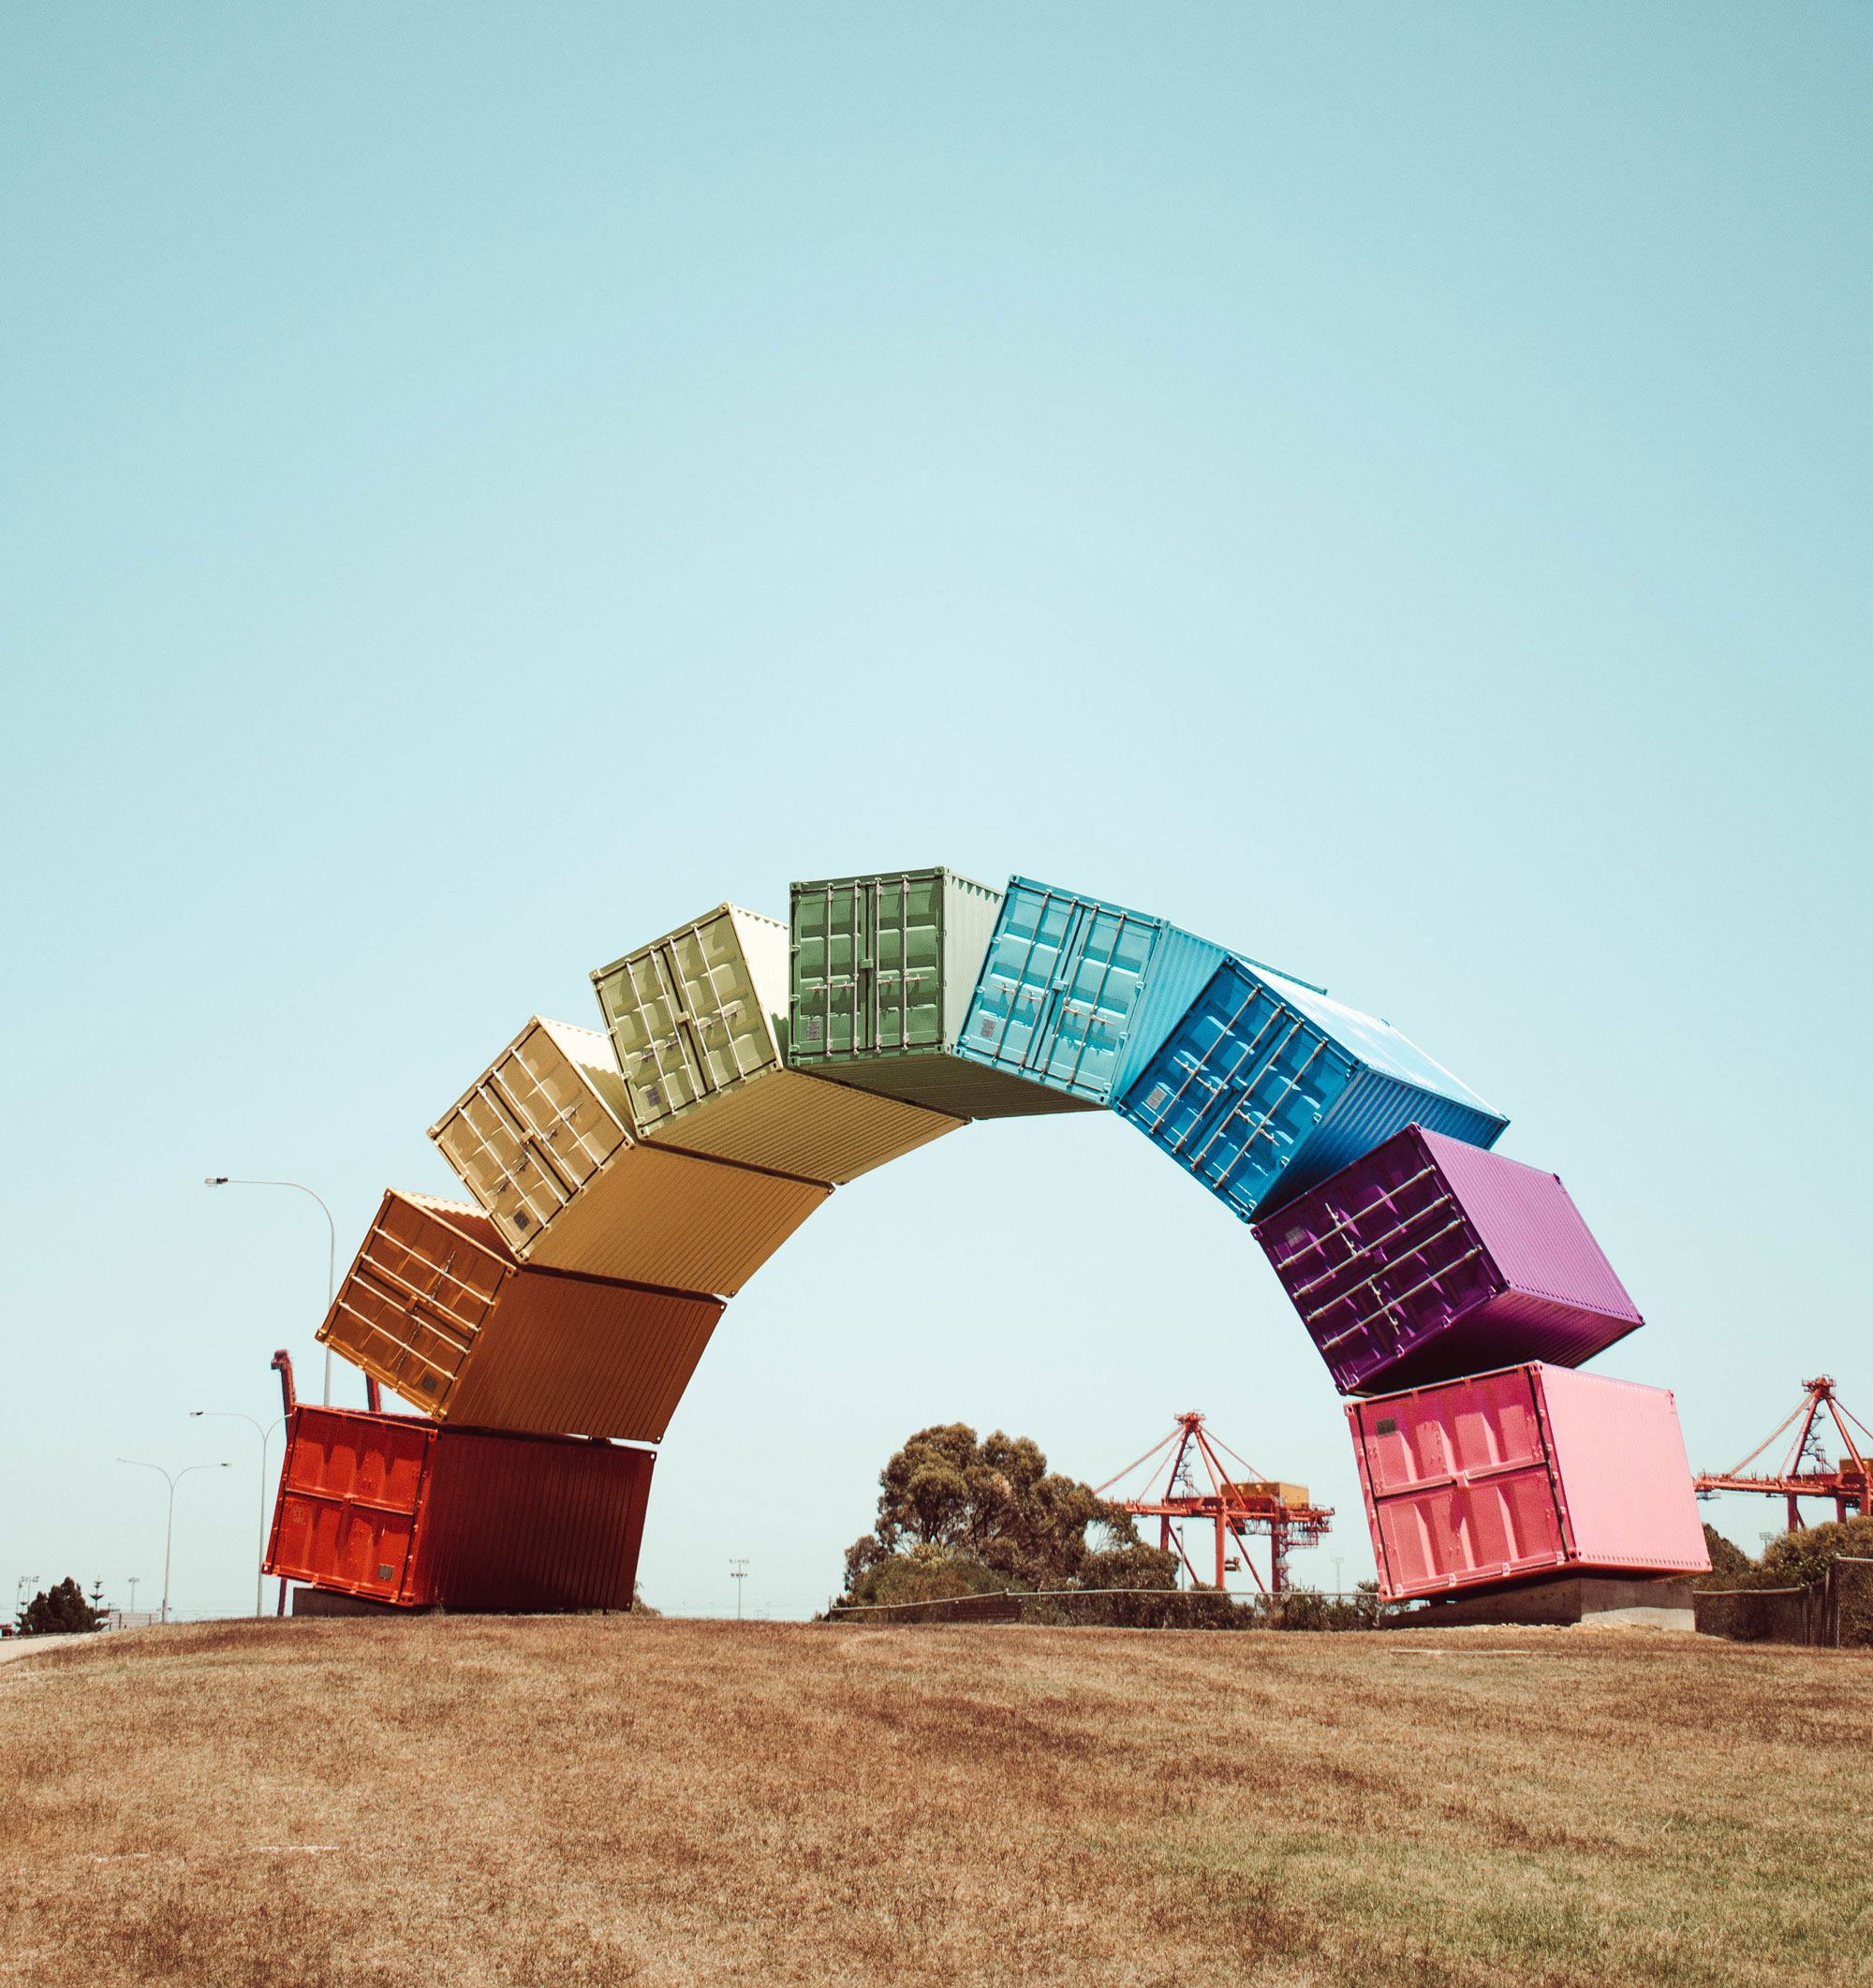 Picture of colourful shipping crates in a rainbow formation, depicting gay pride.